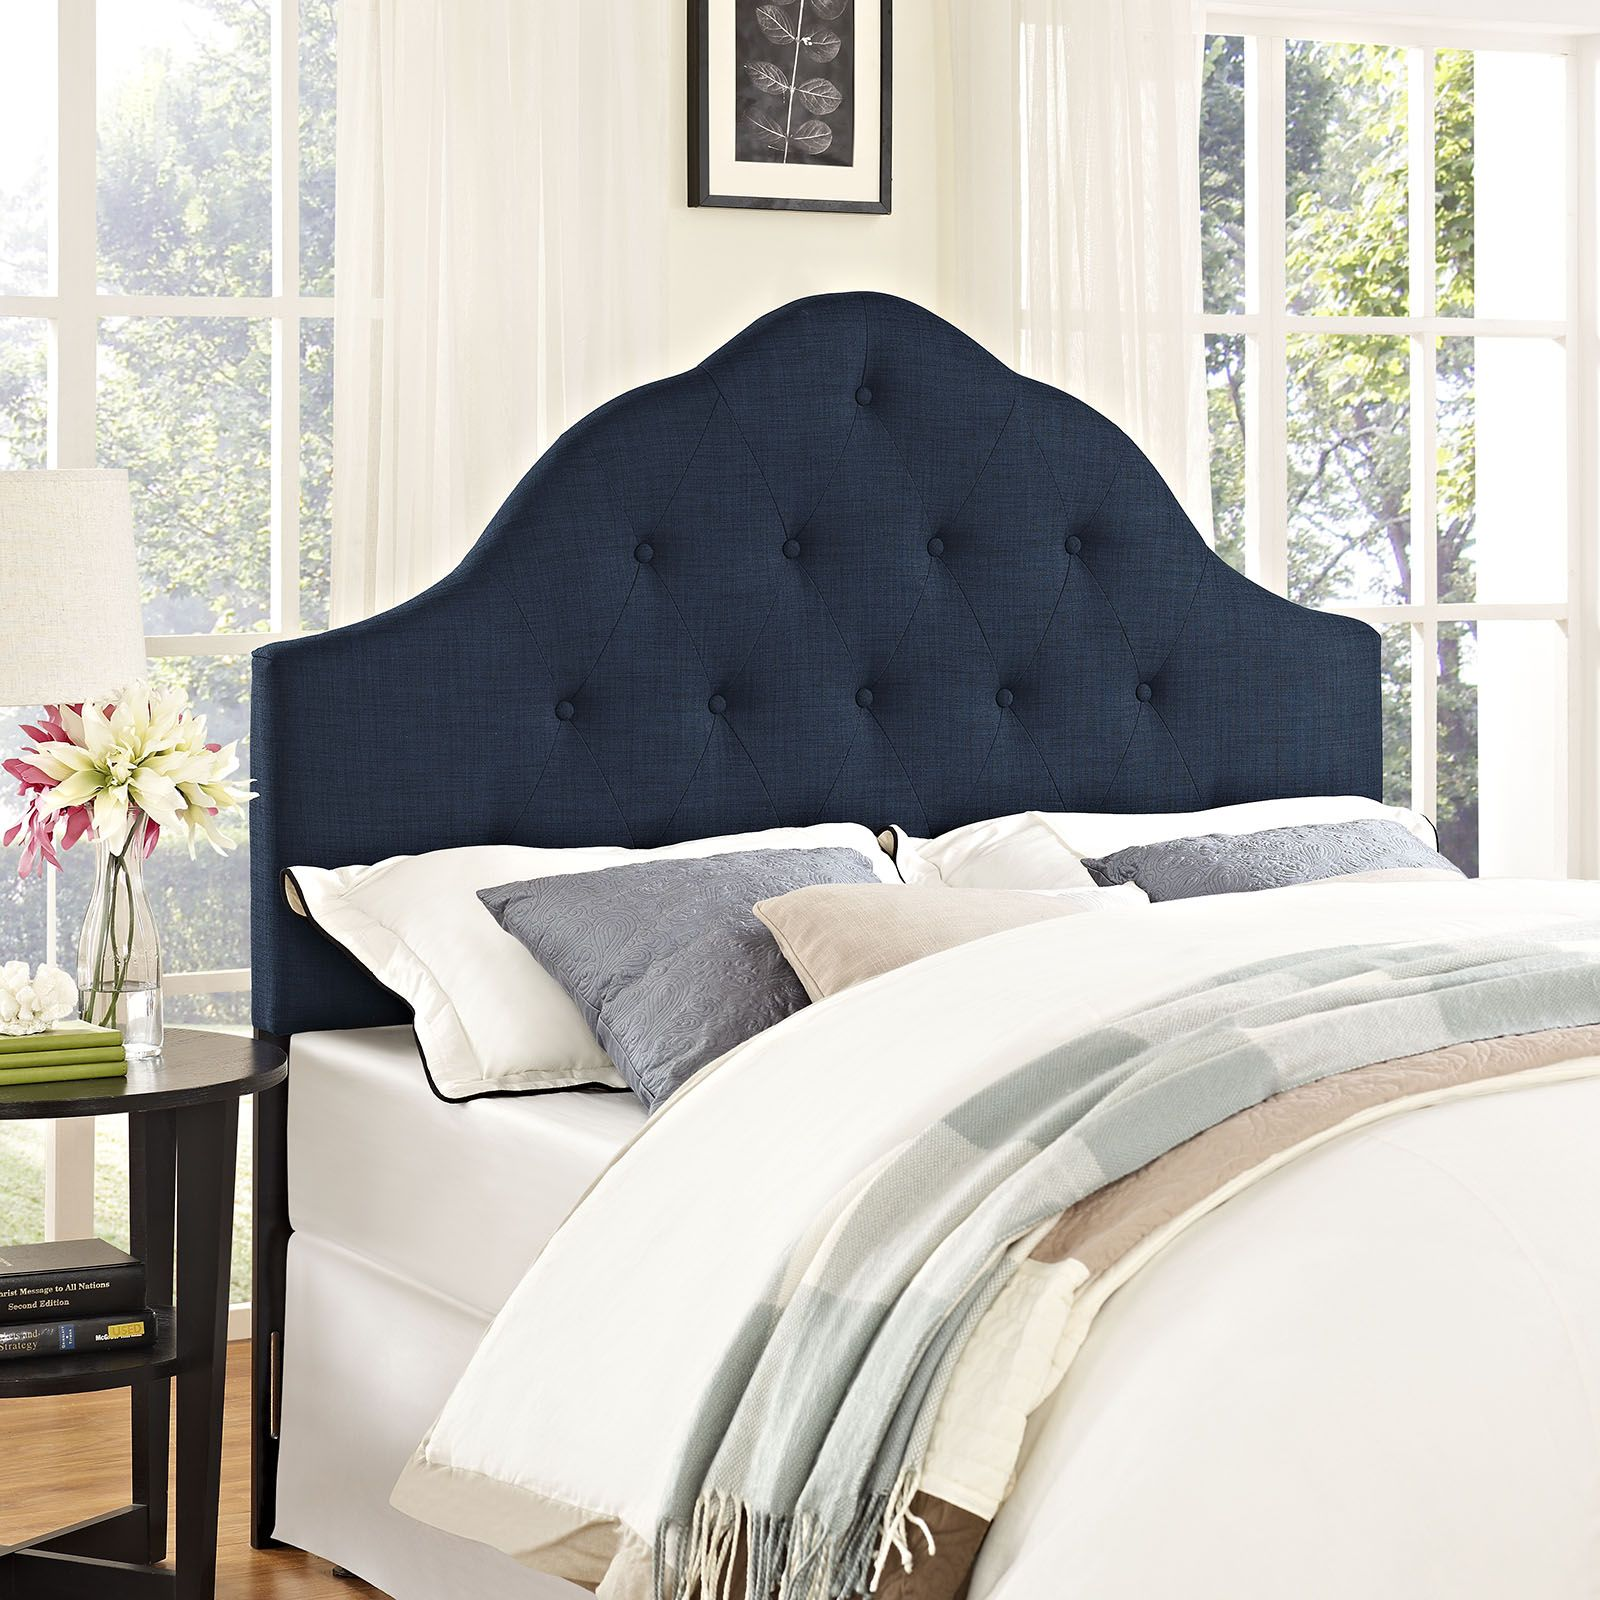 Sovereign Twin Fabric Arched Headboard In Tufted Navy Arch Homedecor Interiordesign Bedroom Coastal Nautical Style